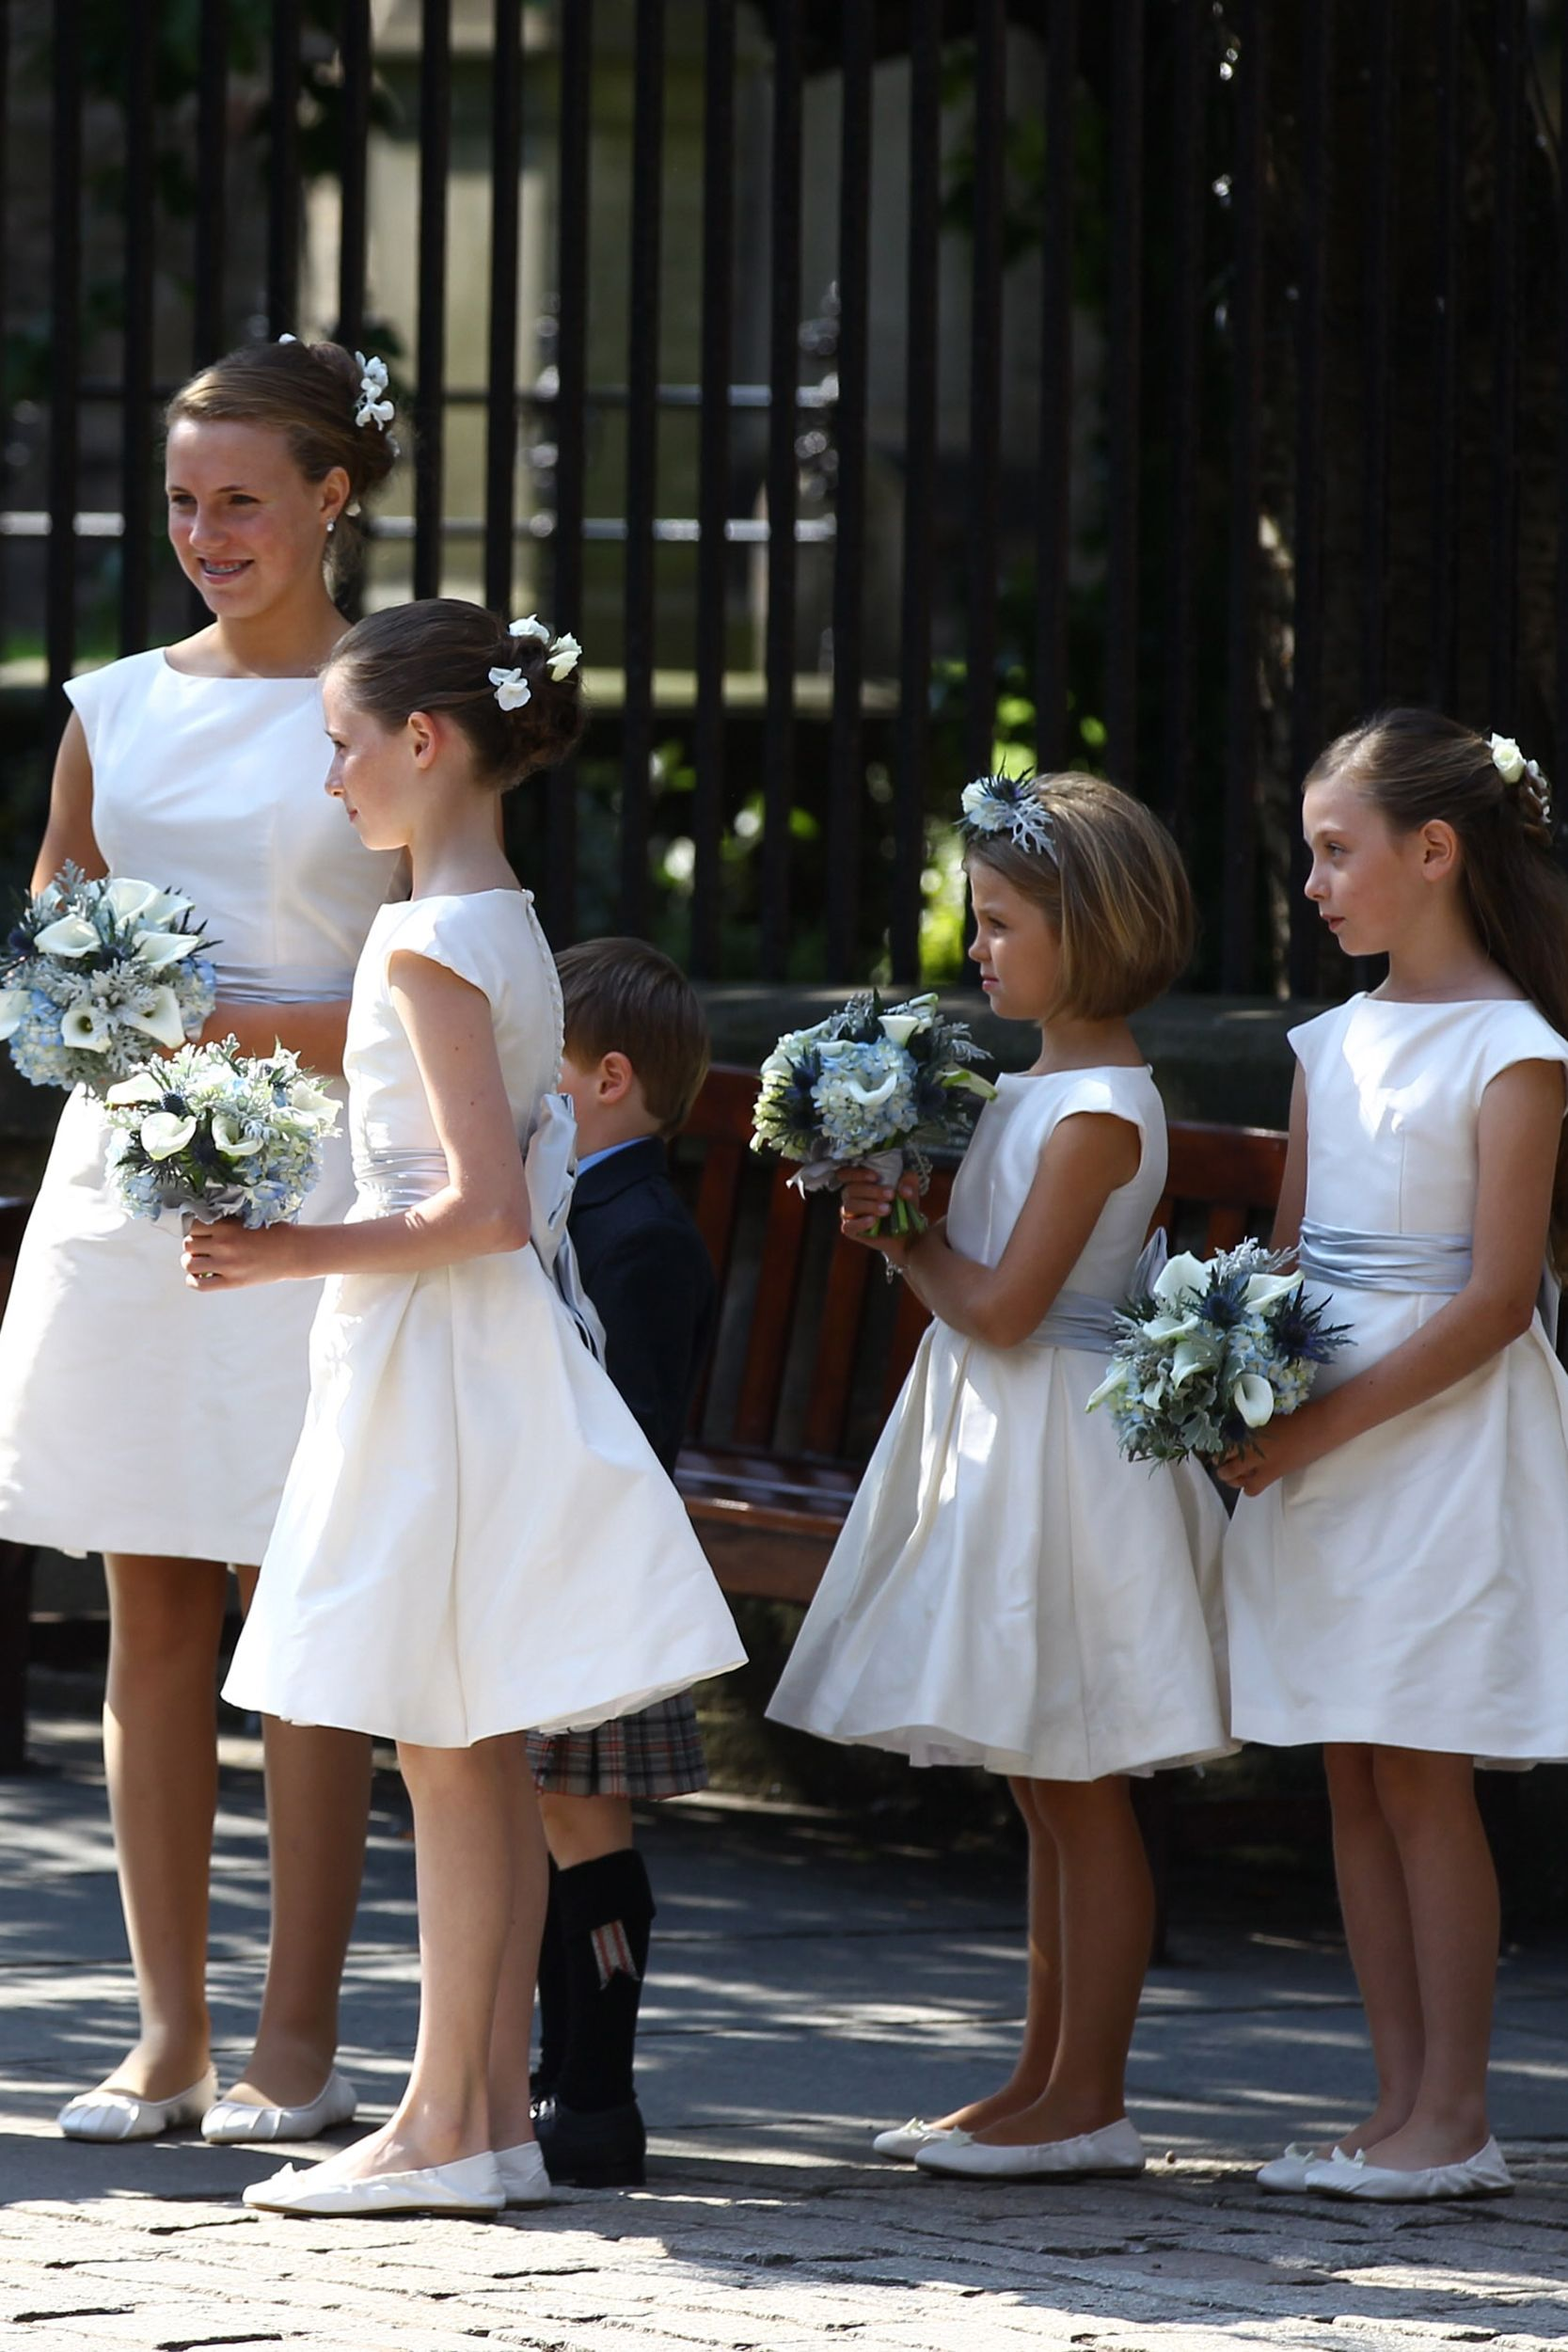 A Look Back At Royal Bridesmaids Through The Years,Formal Summer Beach Wedding Guest Dresses